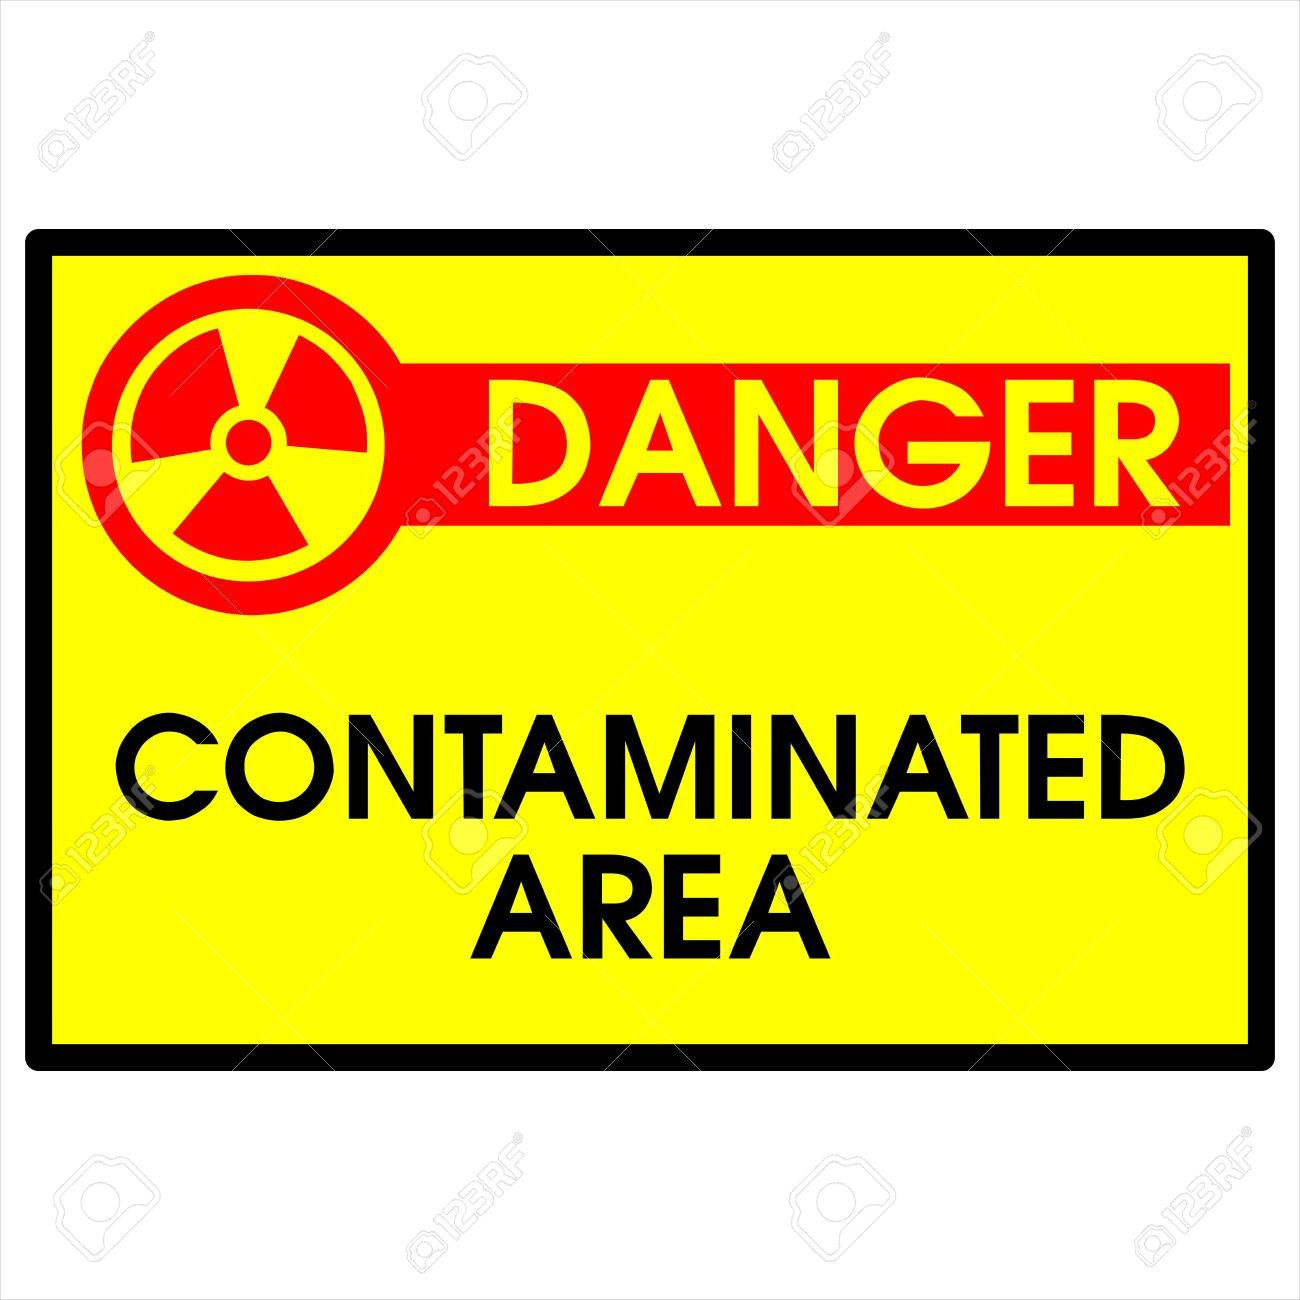 Dander area - contaminated Stock Photo - 7143919